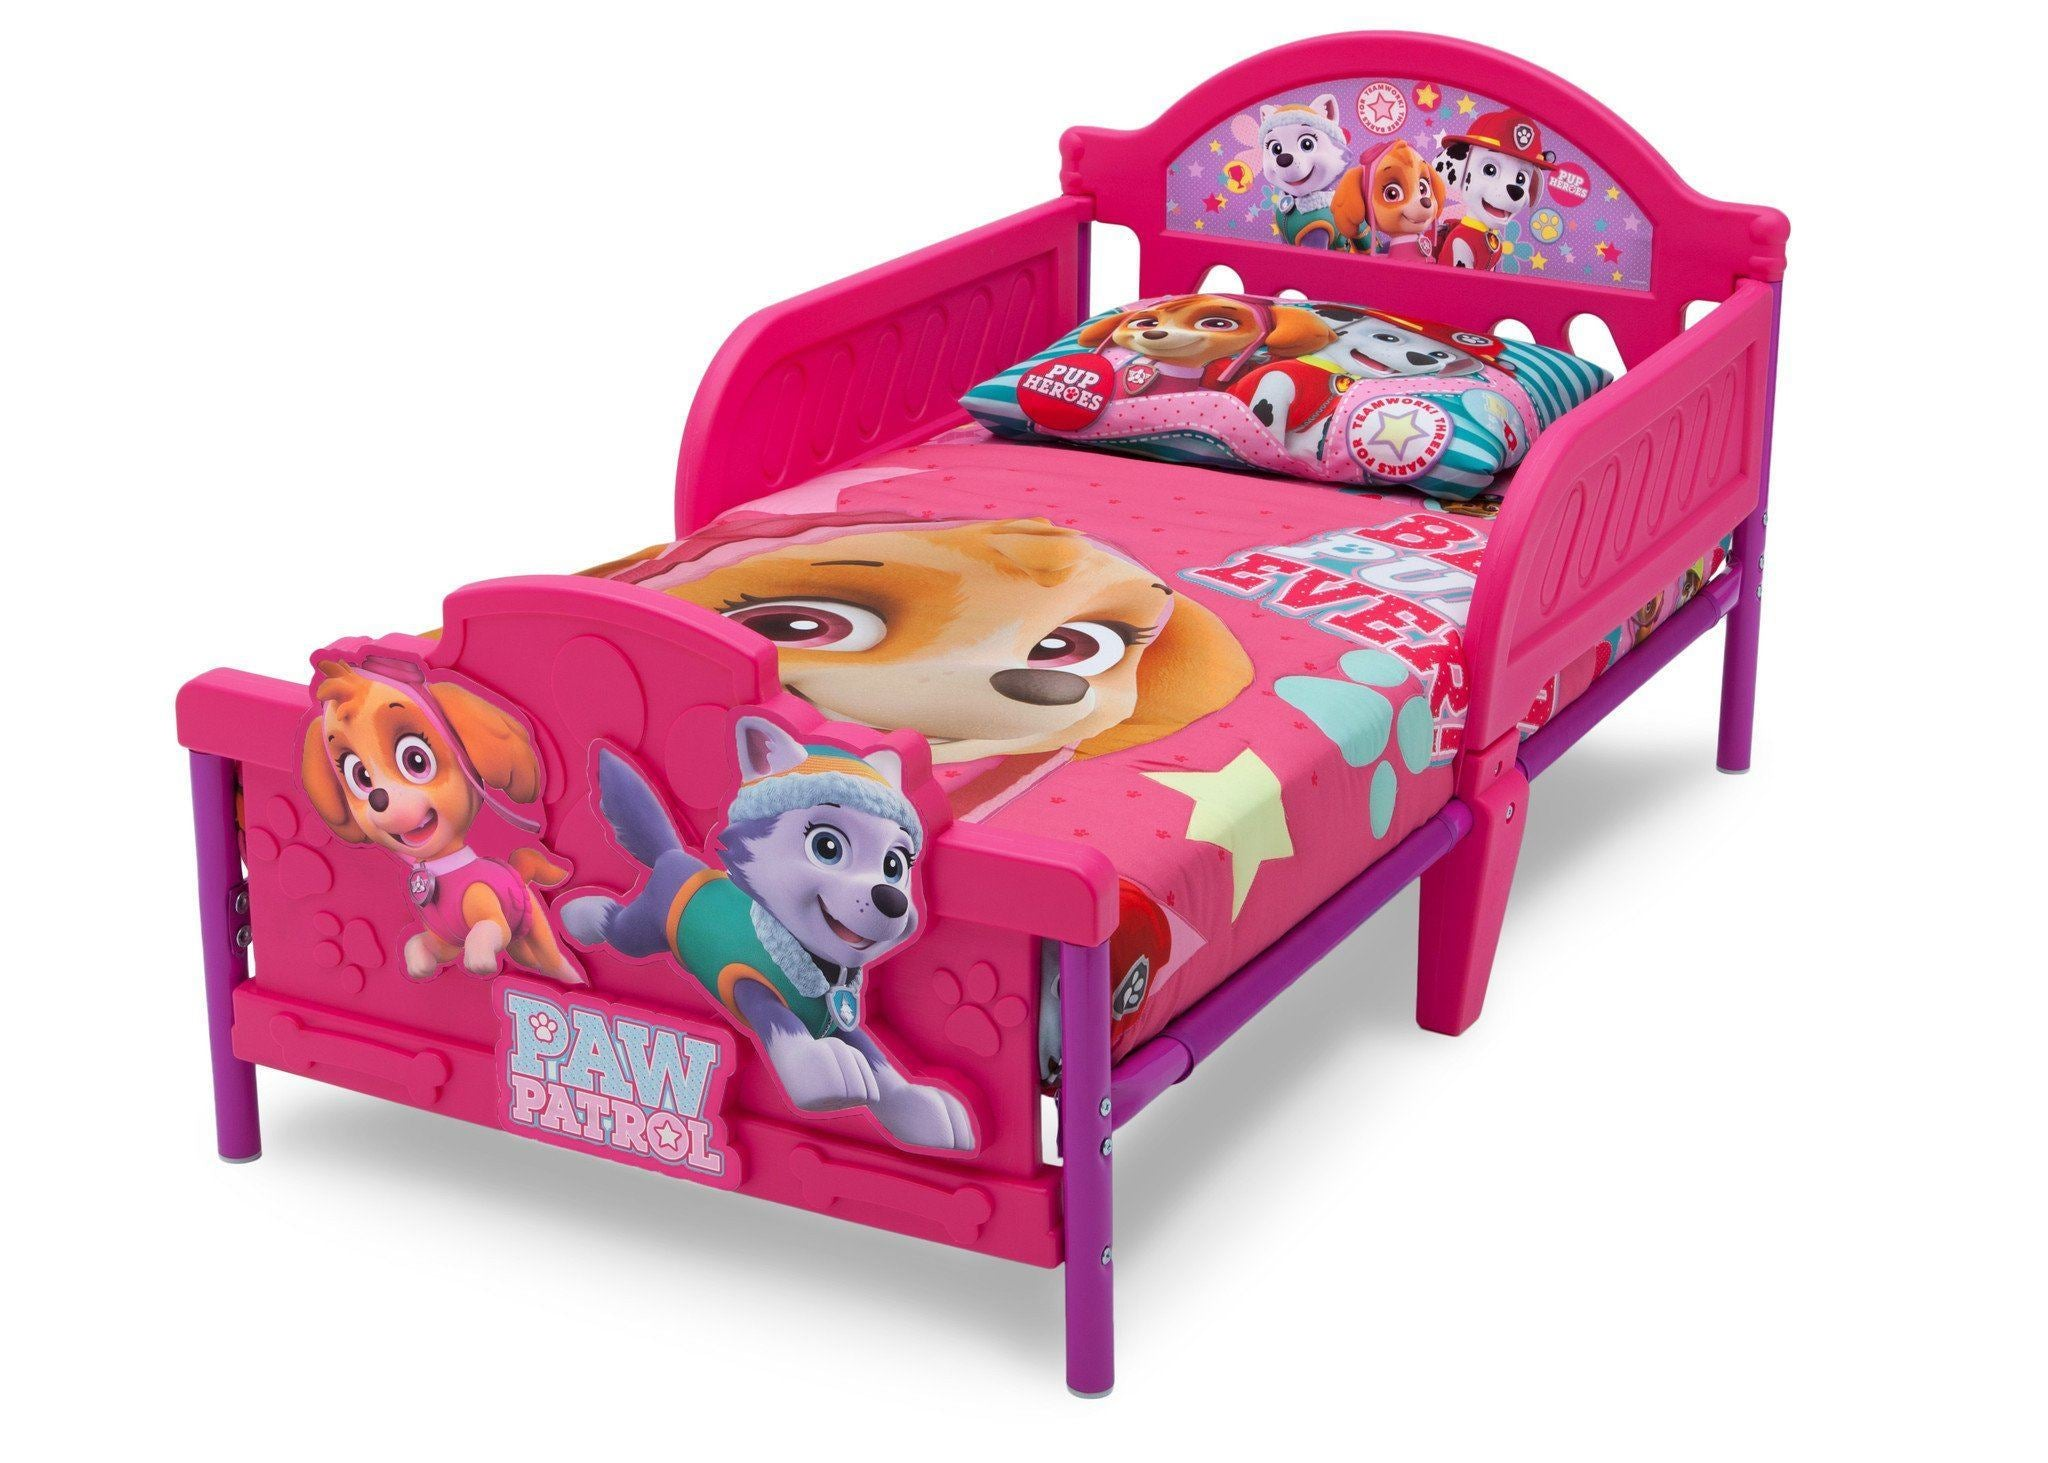 delta children paw patrol skye everest 3d toddler bed left view a3a - Paw Patrol Toddler Bedding